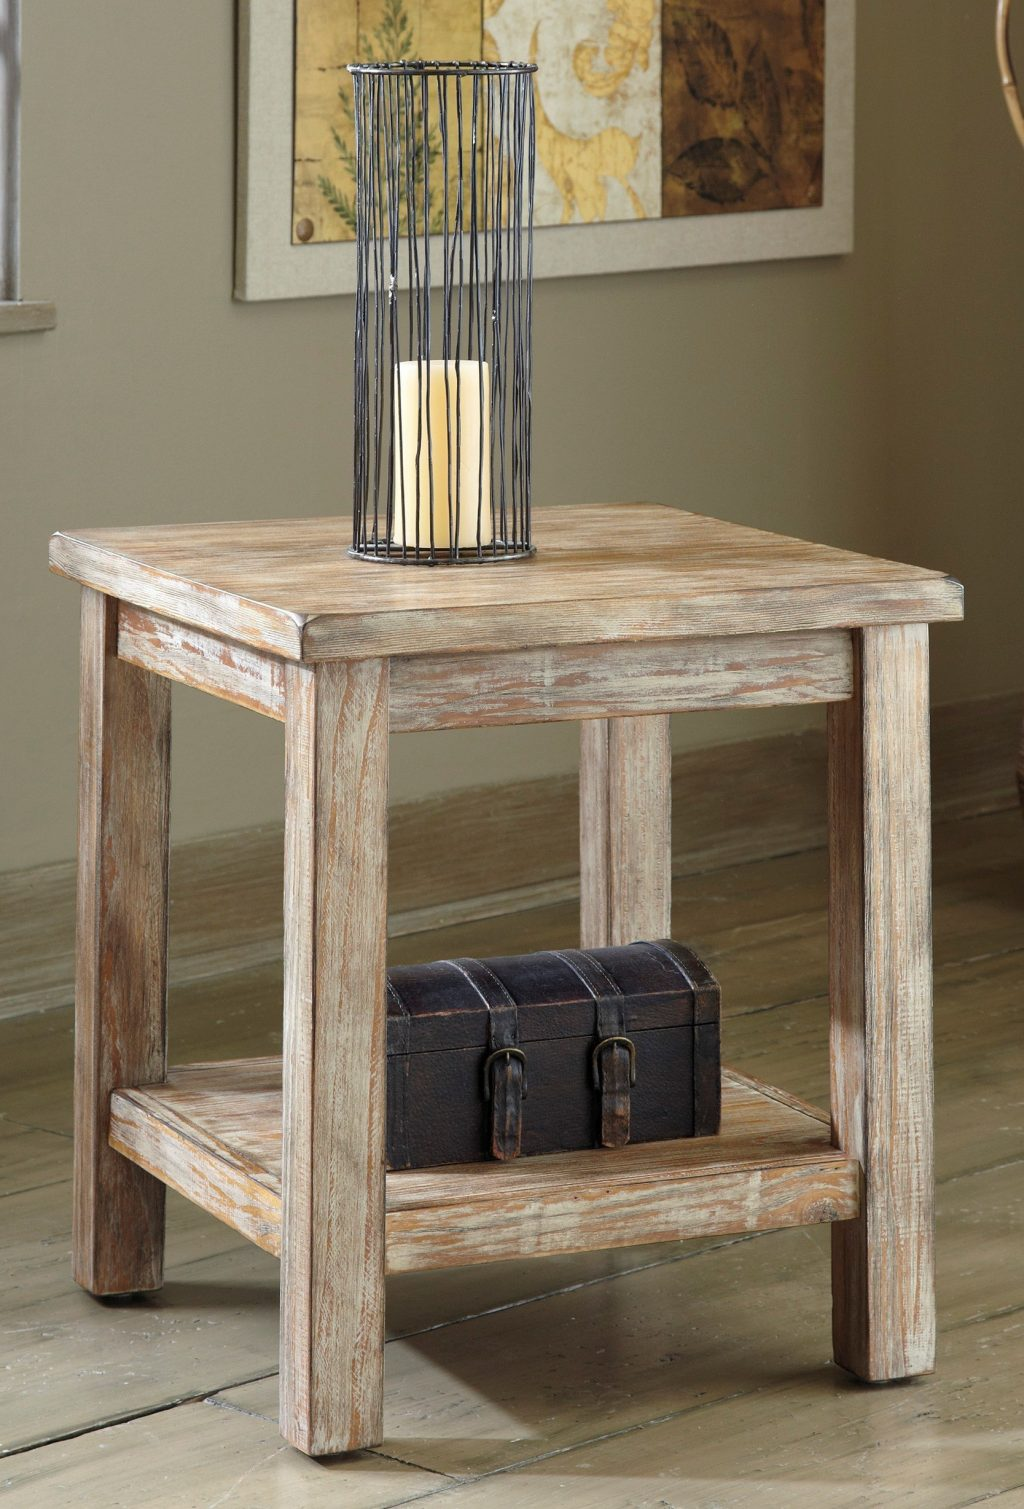 barnwood end tables probably terrific great white oak table living room rustic design roy home cherry wood small accent chairs ethan allen country french desk baker furniture